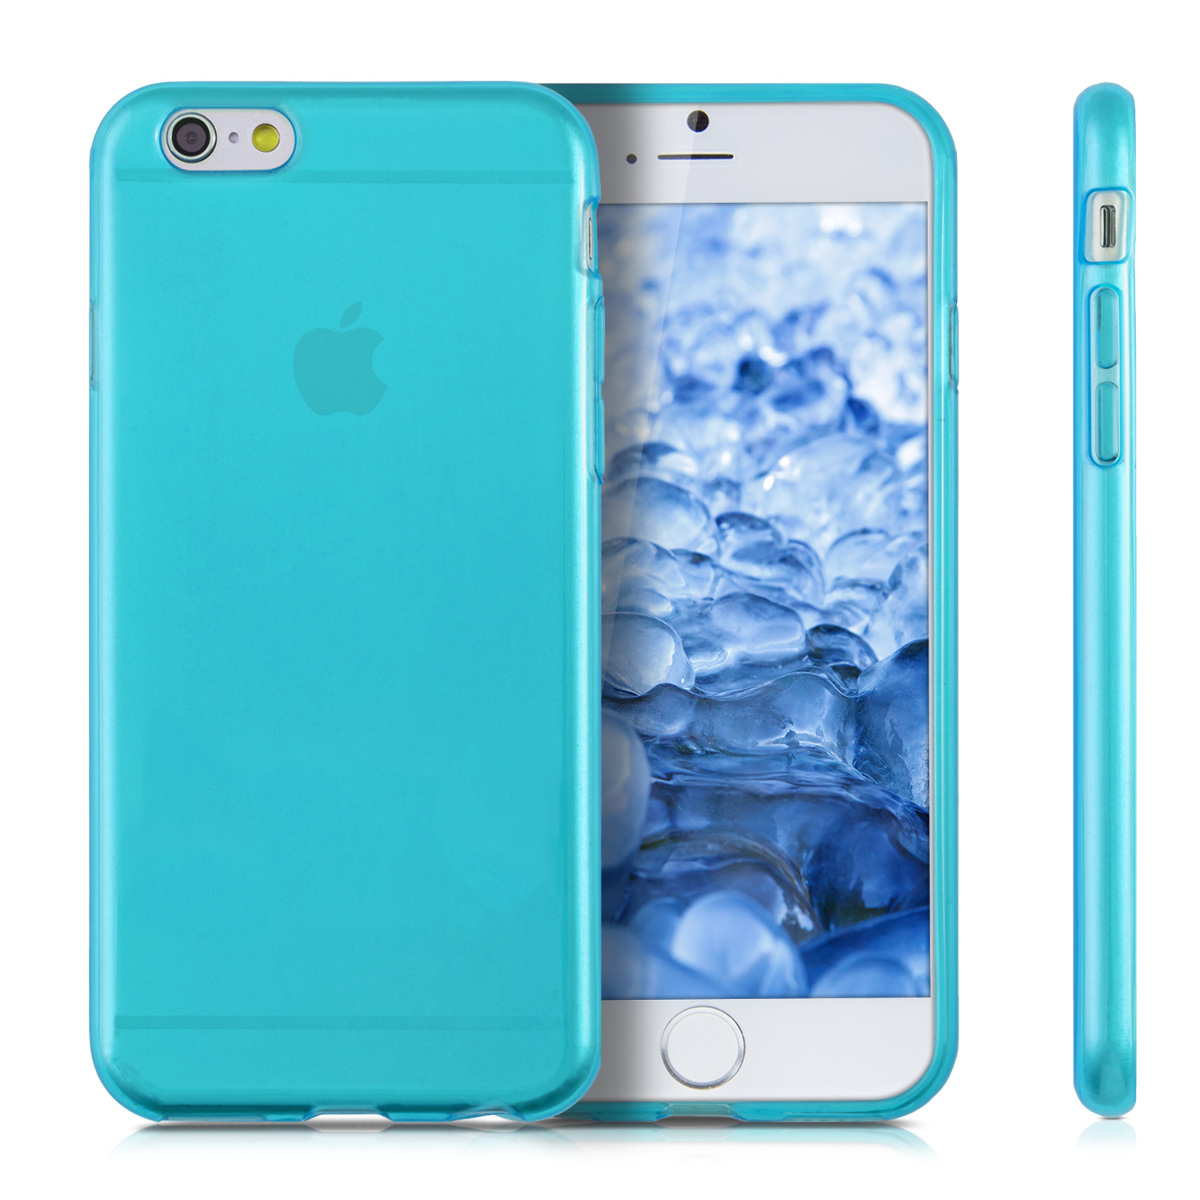 Iphone 6 silicone covers